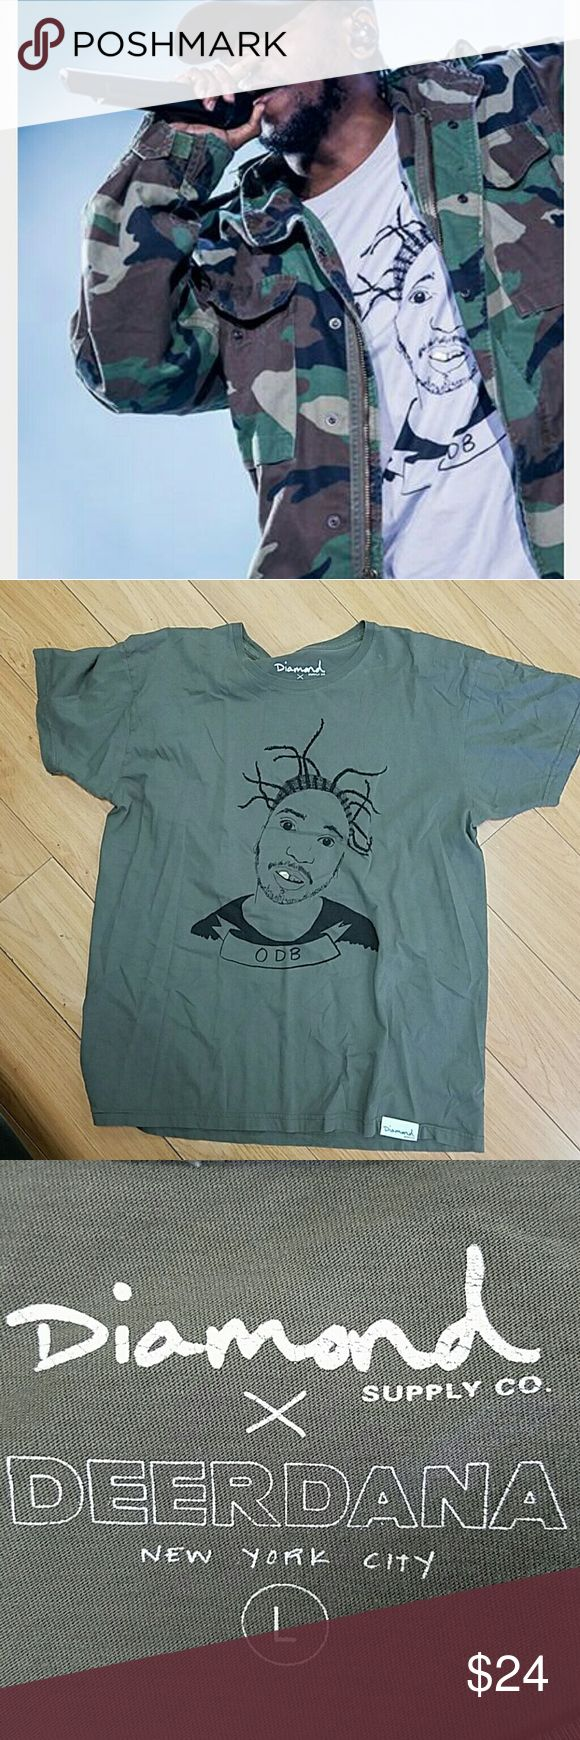 ODB Diamond Supply Company size large If its good enough for Kendrick Lamar, its good enough for you. Excellent condition! Diamond Supply Co. Shirts Tees - Short Sleeve